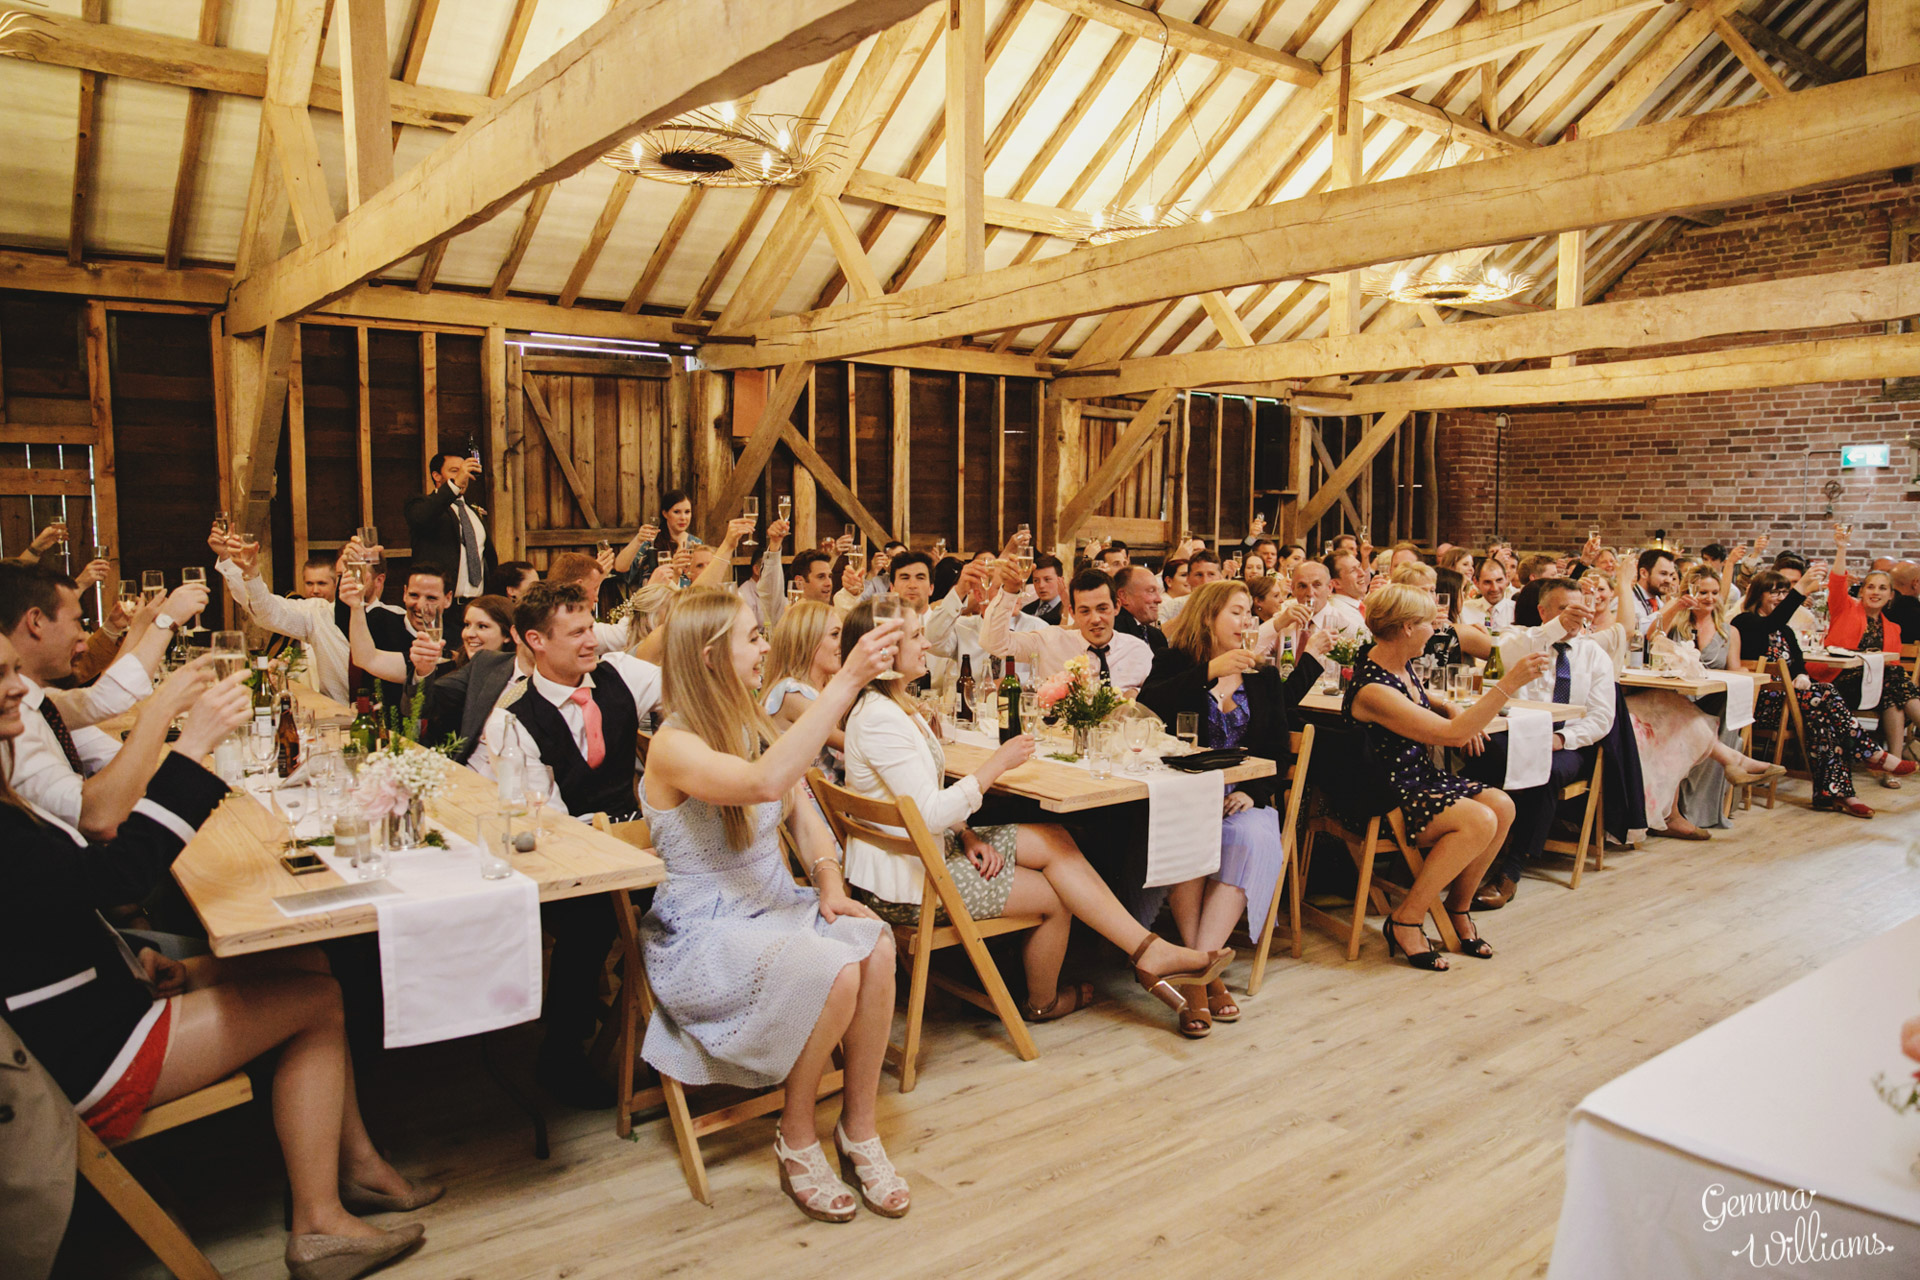 HaybarnWedding_GemmaWilliamsPhoto166.jpg